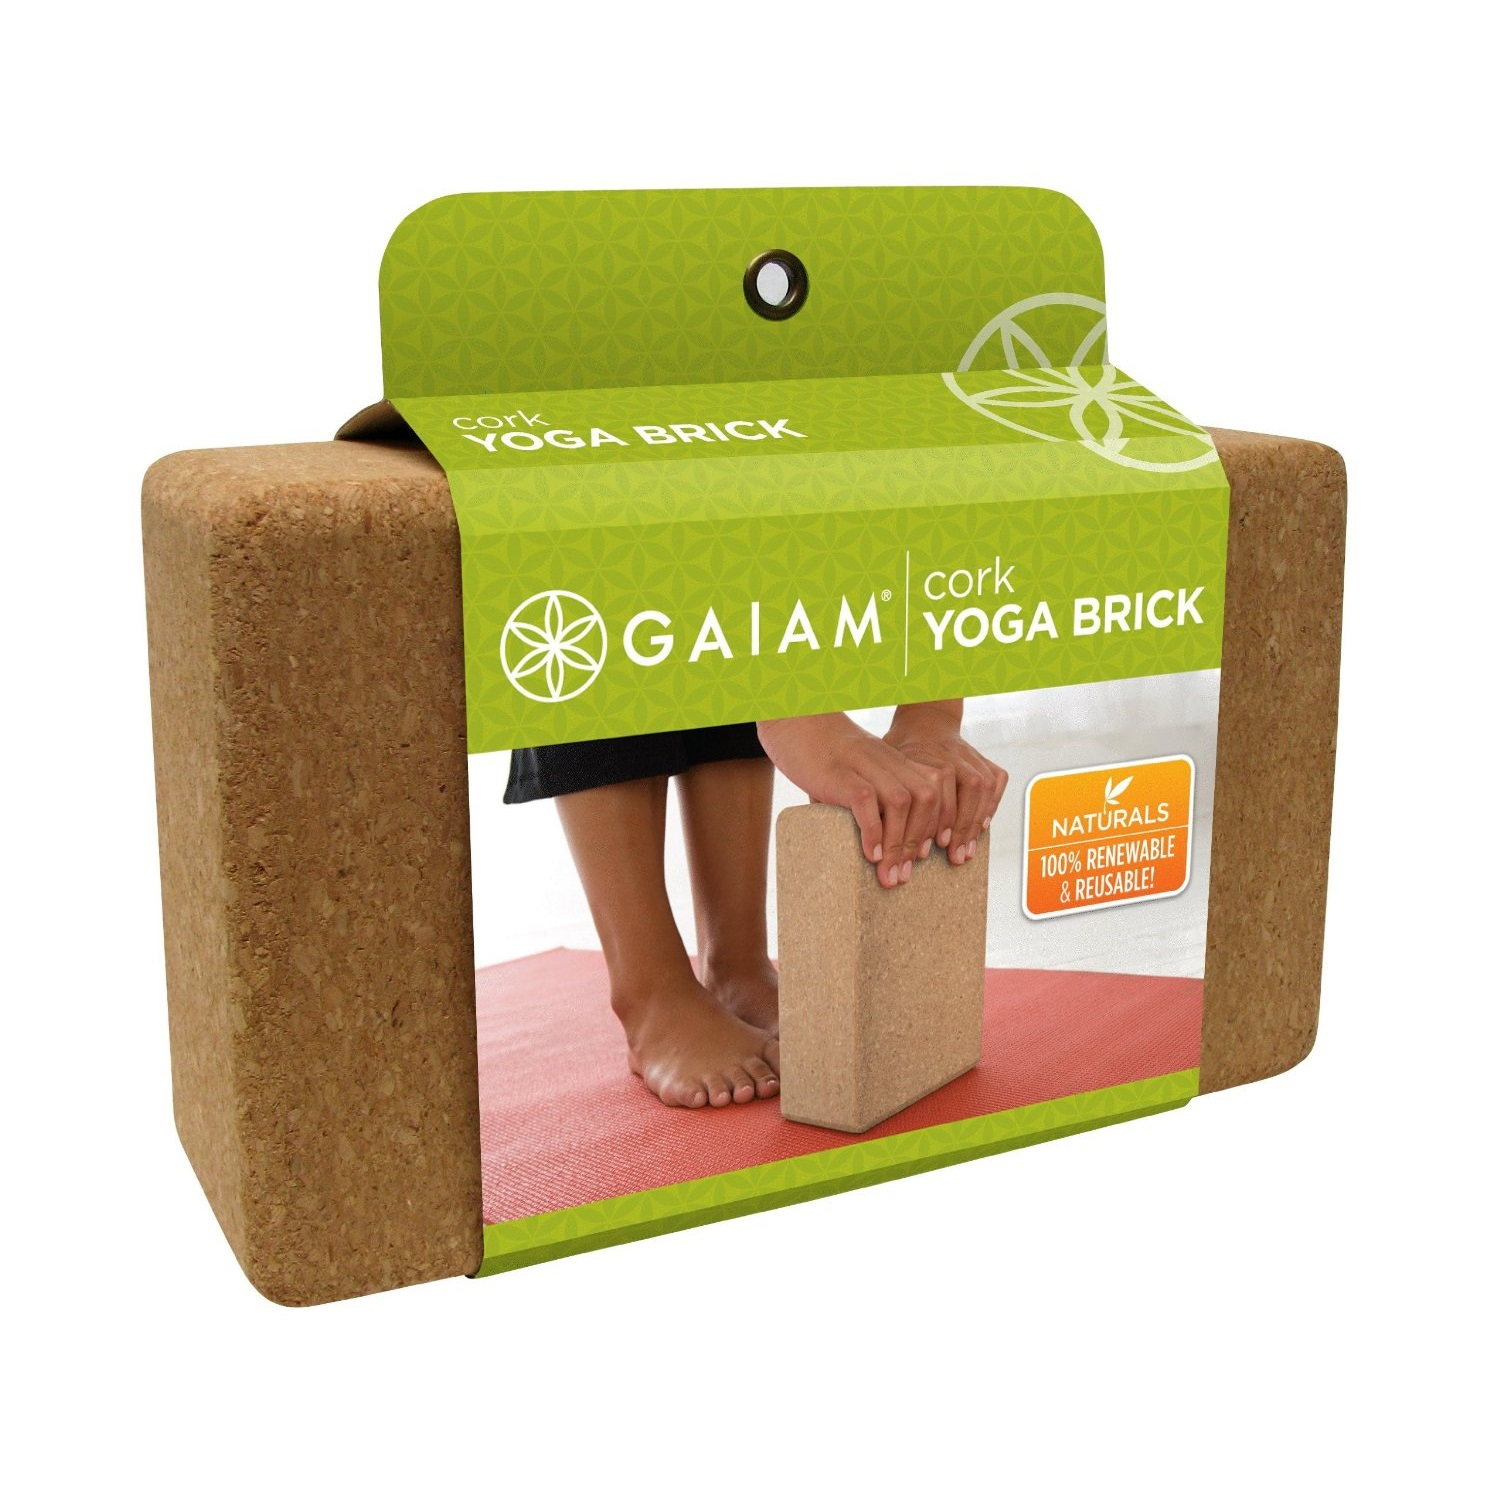 gaiam cork yoga brick